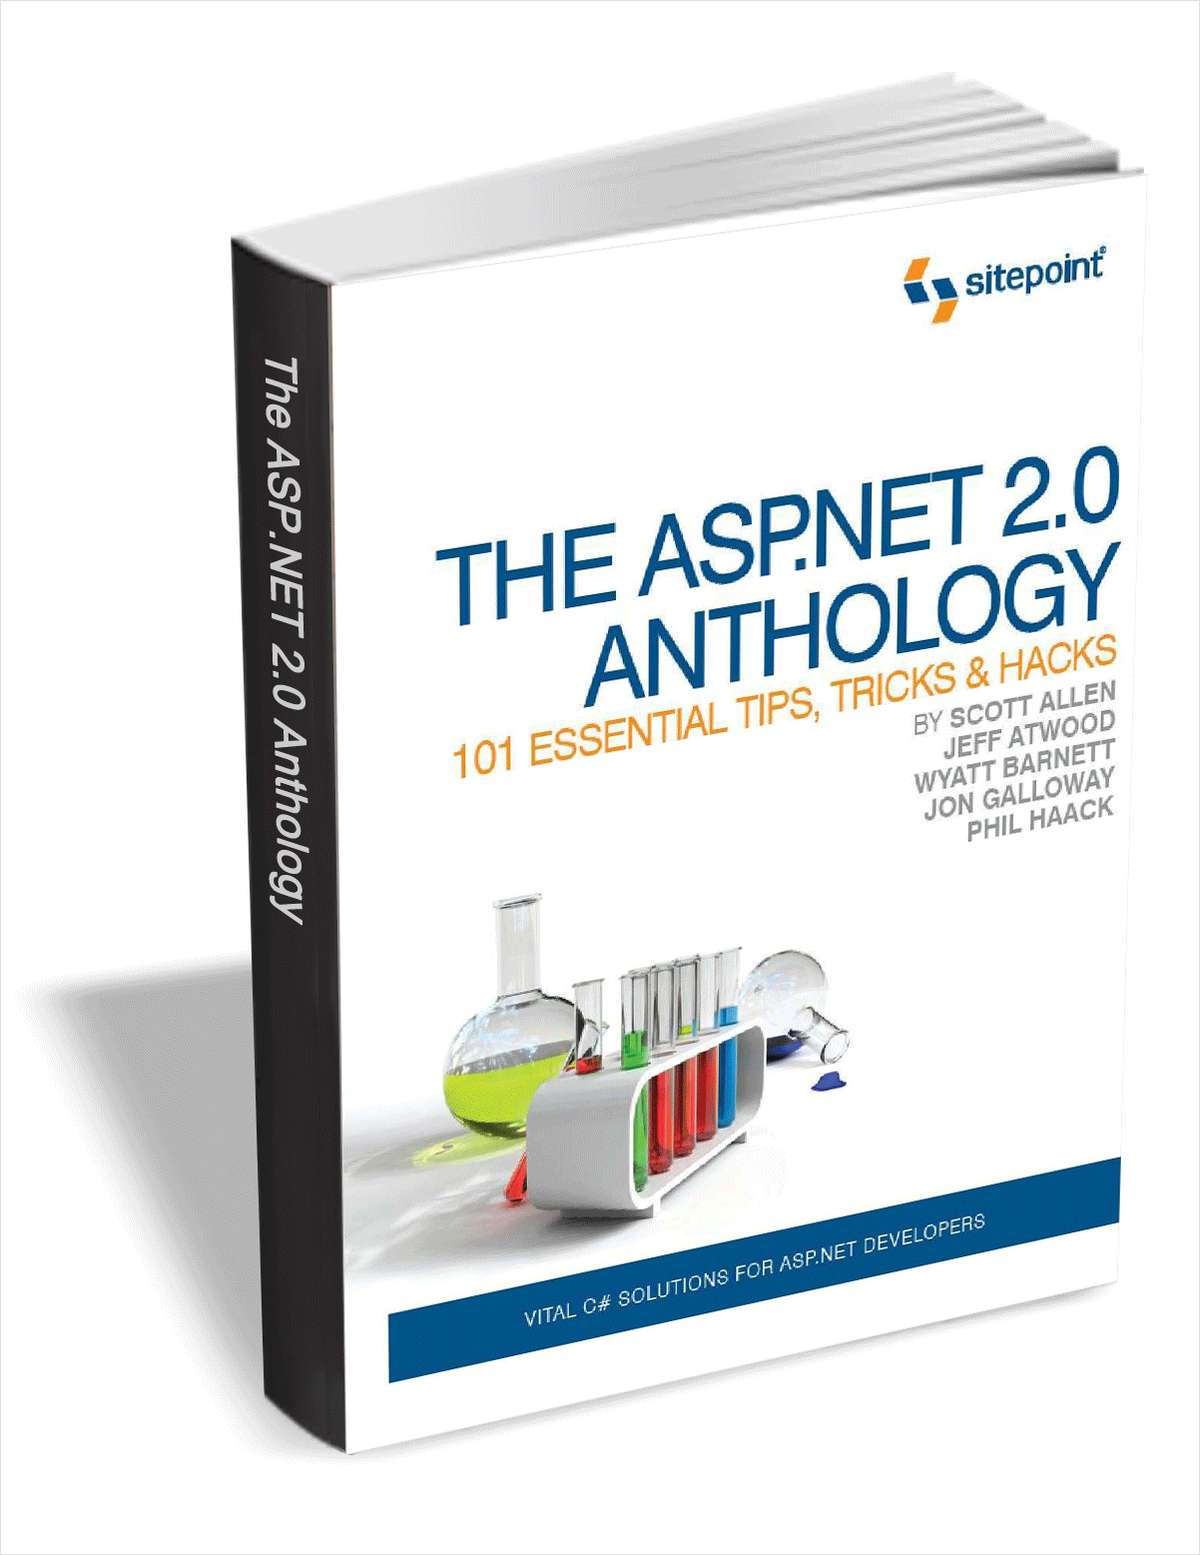 The ASP.NET 2.0 Anthology - 101 Essential Tips, Tricks & Hacks ($29 Value FREE For a Limited Time)